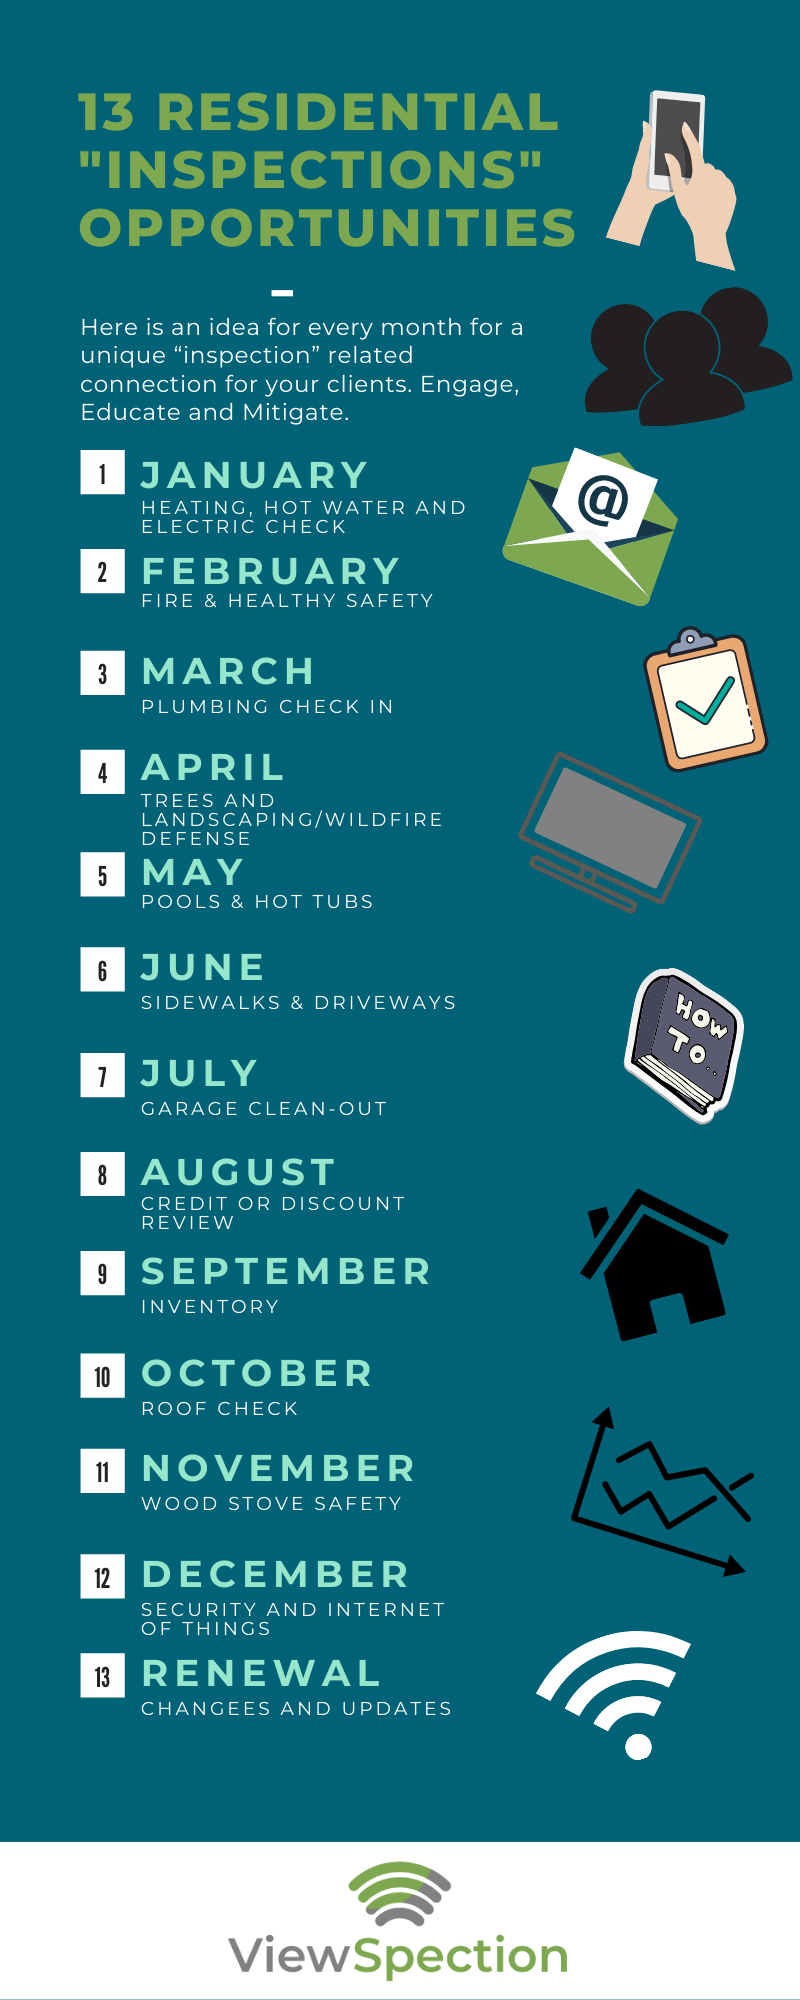 A list of 13 residential inspection opportunities per month of the year